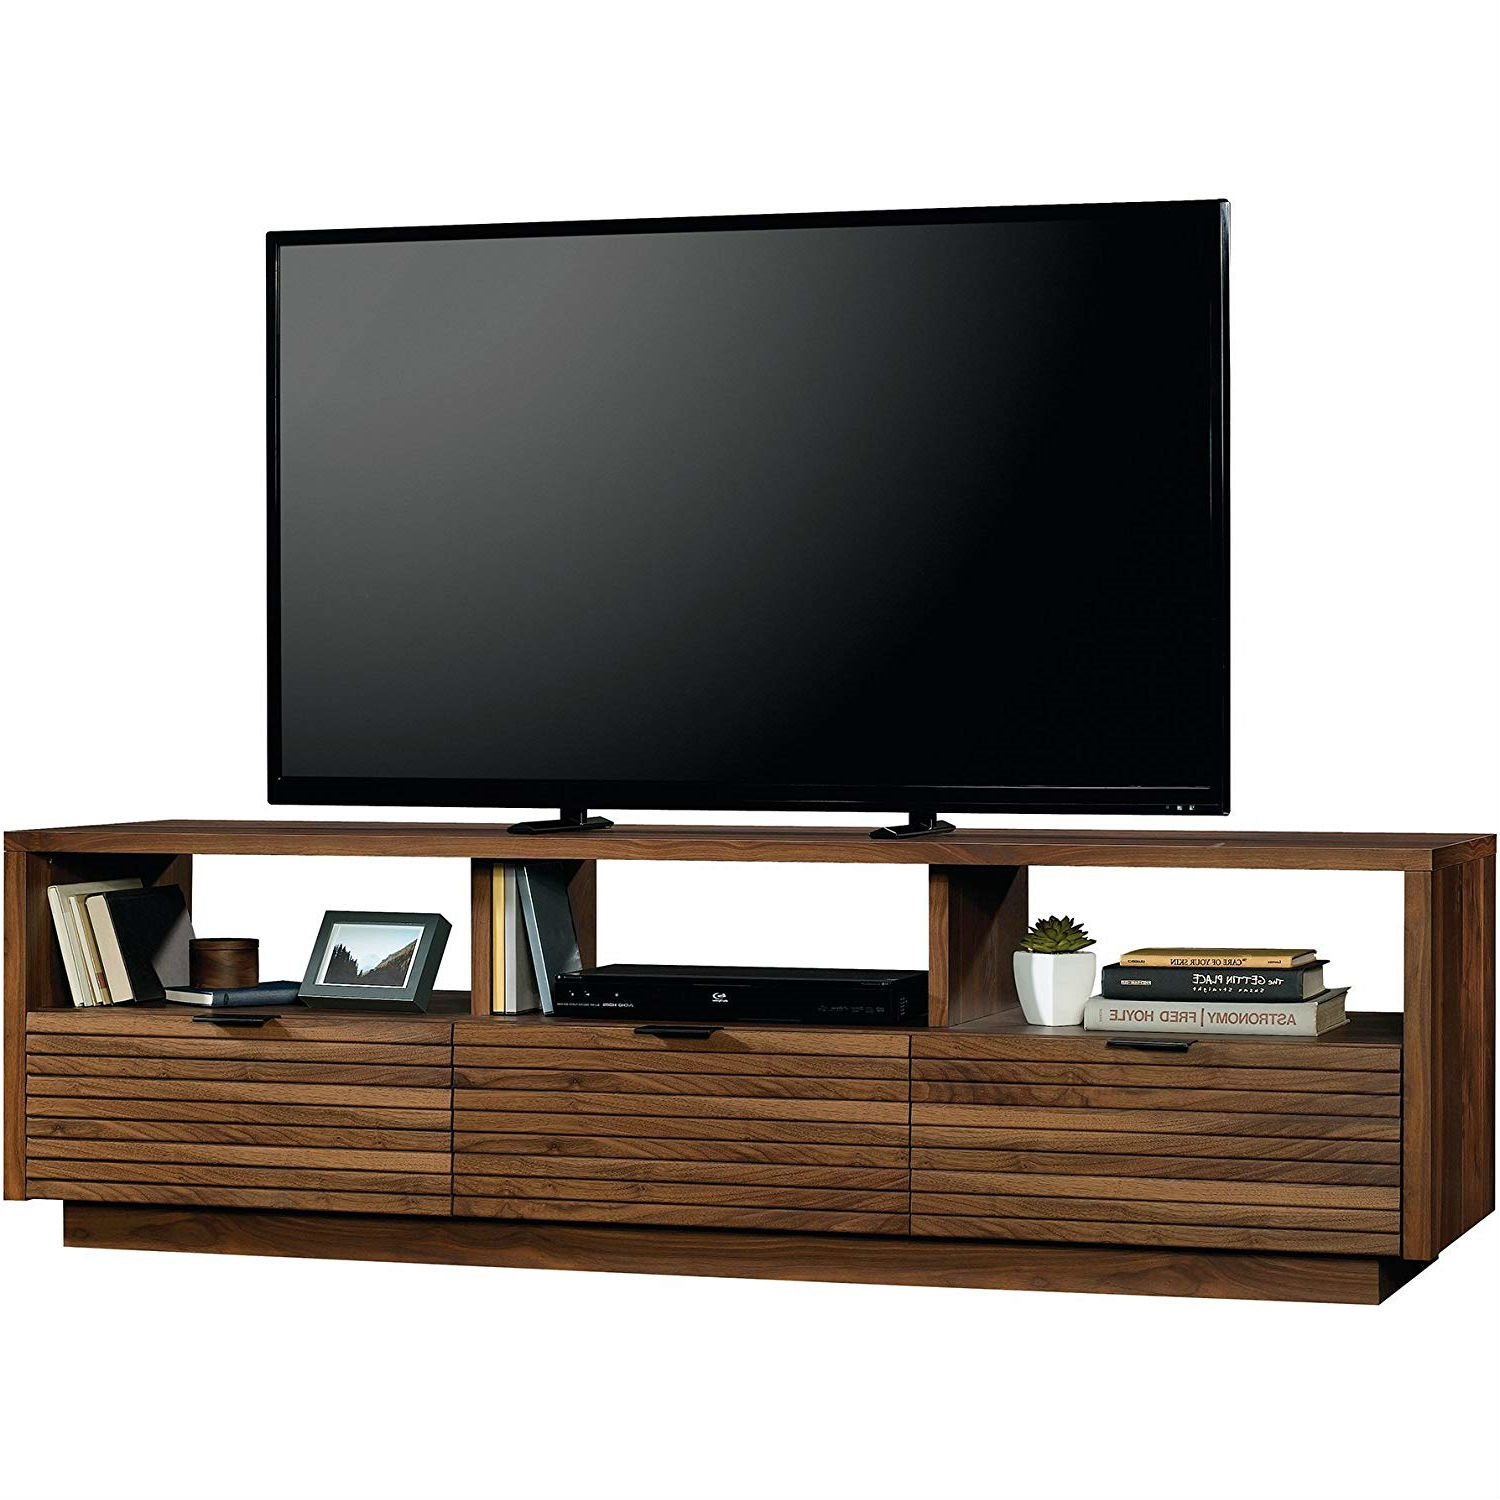 Modern Walnut Finish Tv Stand Entertainment Center Fits Up To 70 Inch